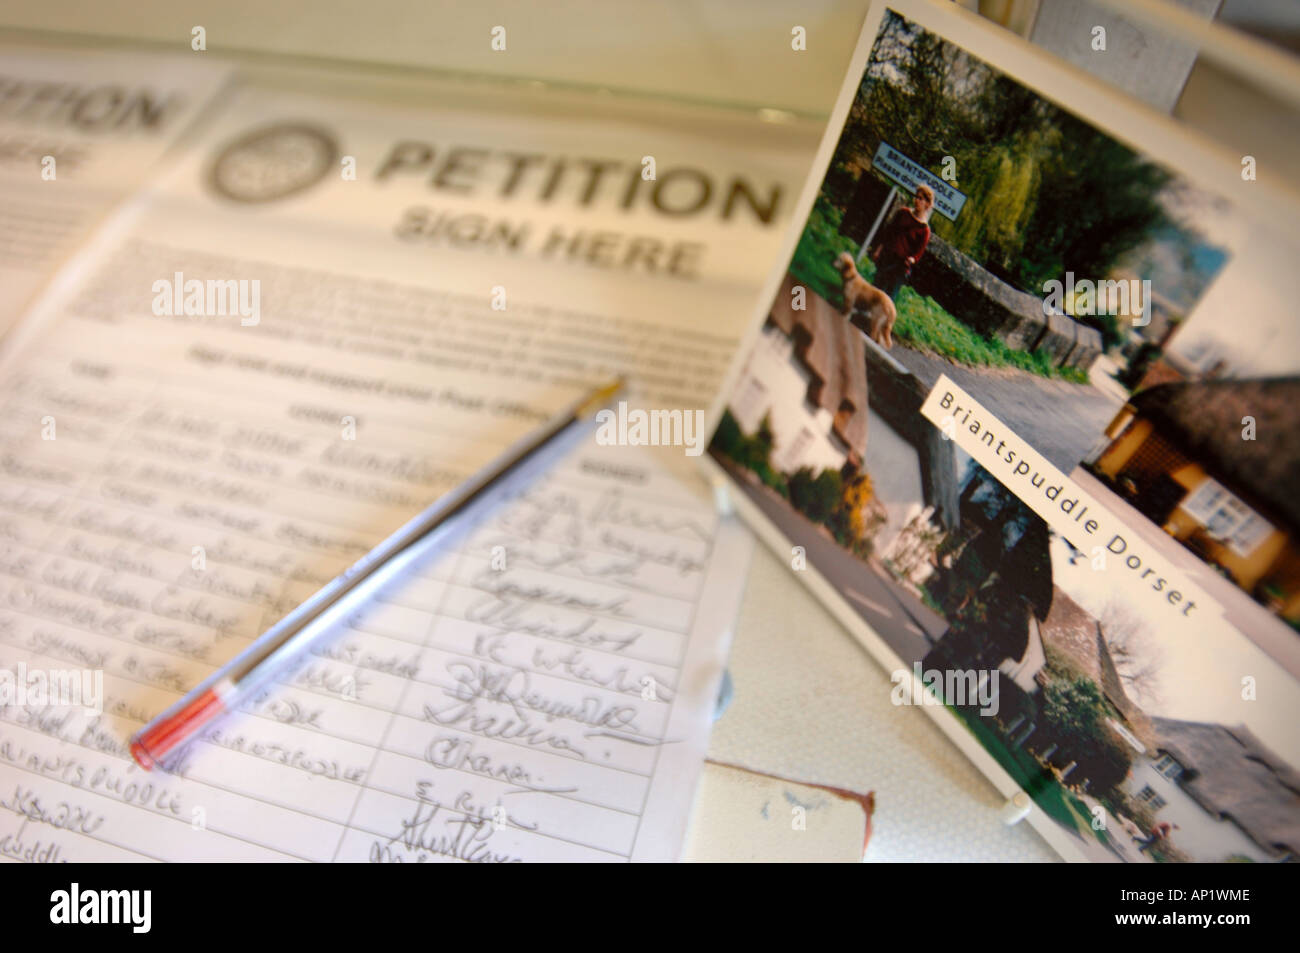 A PETITION TO SAVE THE VILLAGE SHOP AND POST OFFICE AT BRIANTSPUDDLE IN DORSET UK - Stock Image